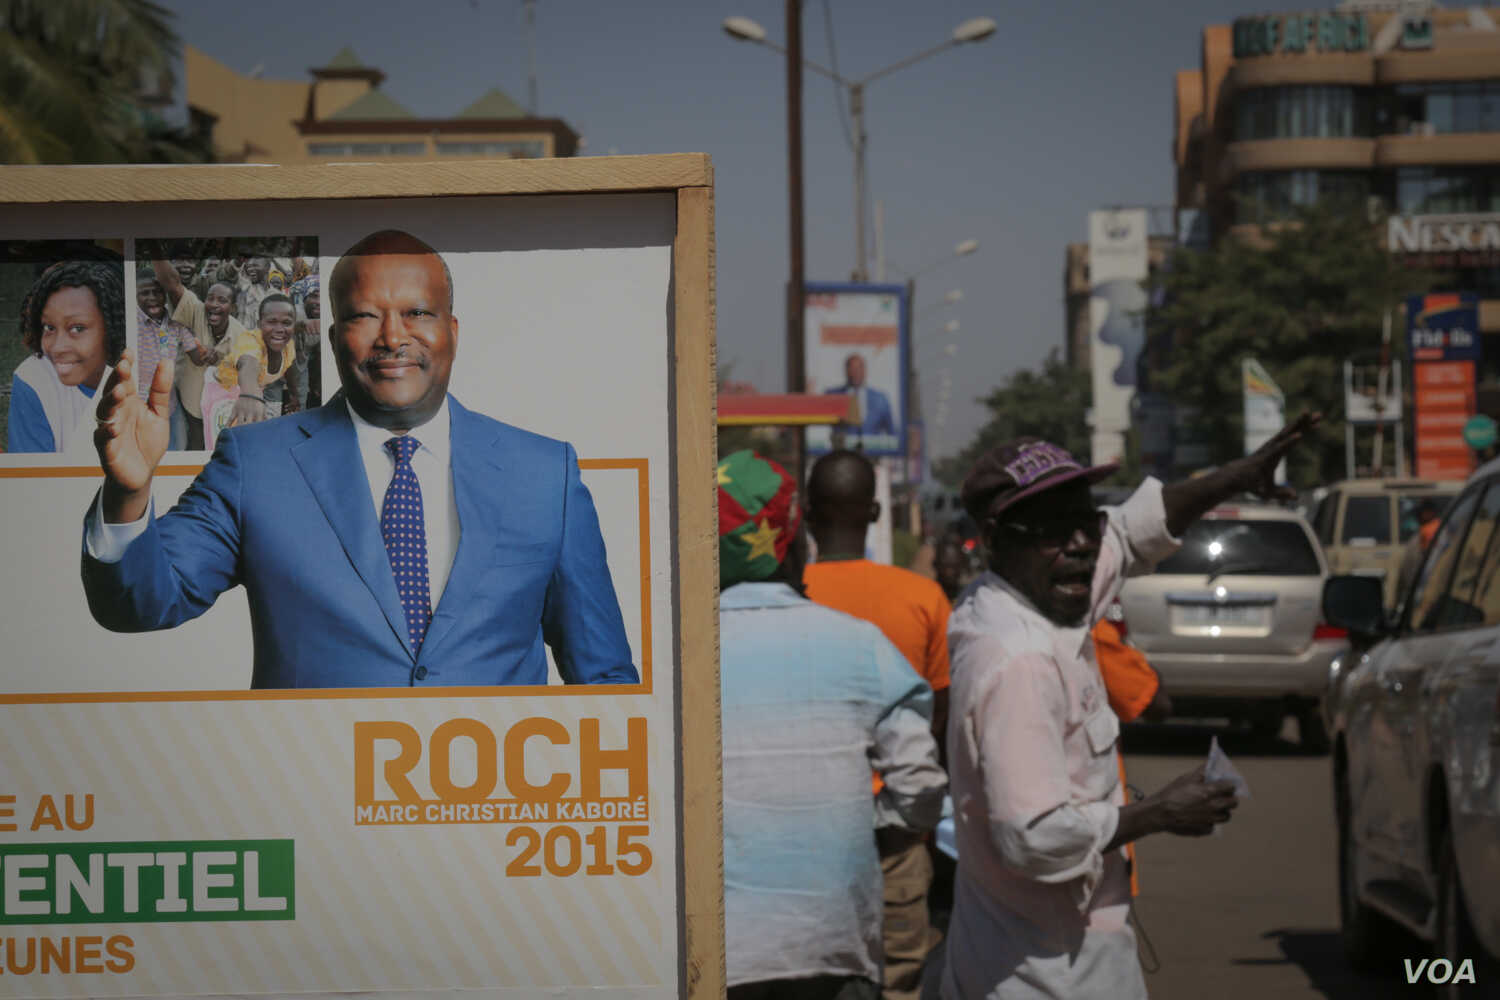 An electoral poster of candidate Roch Marc Christian Kaboré is displayed on the streets of Ouagadougou, Burkina Faso.